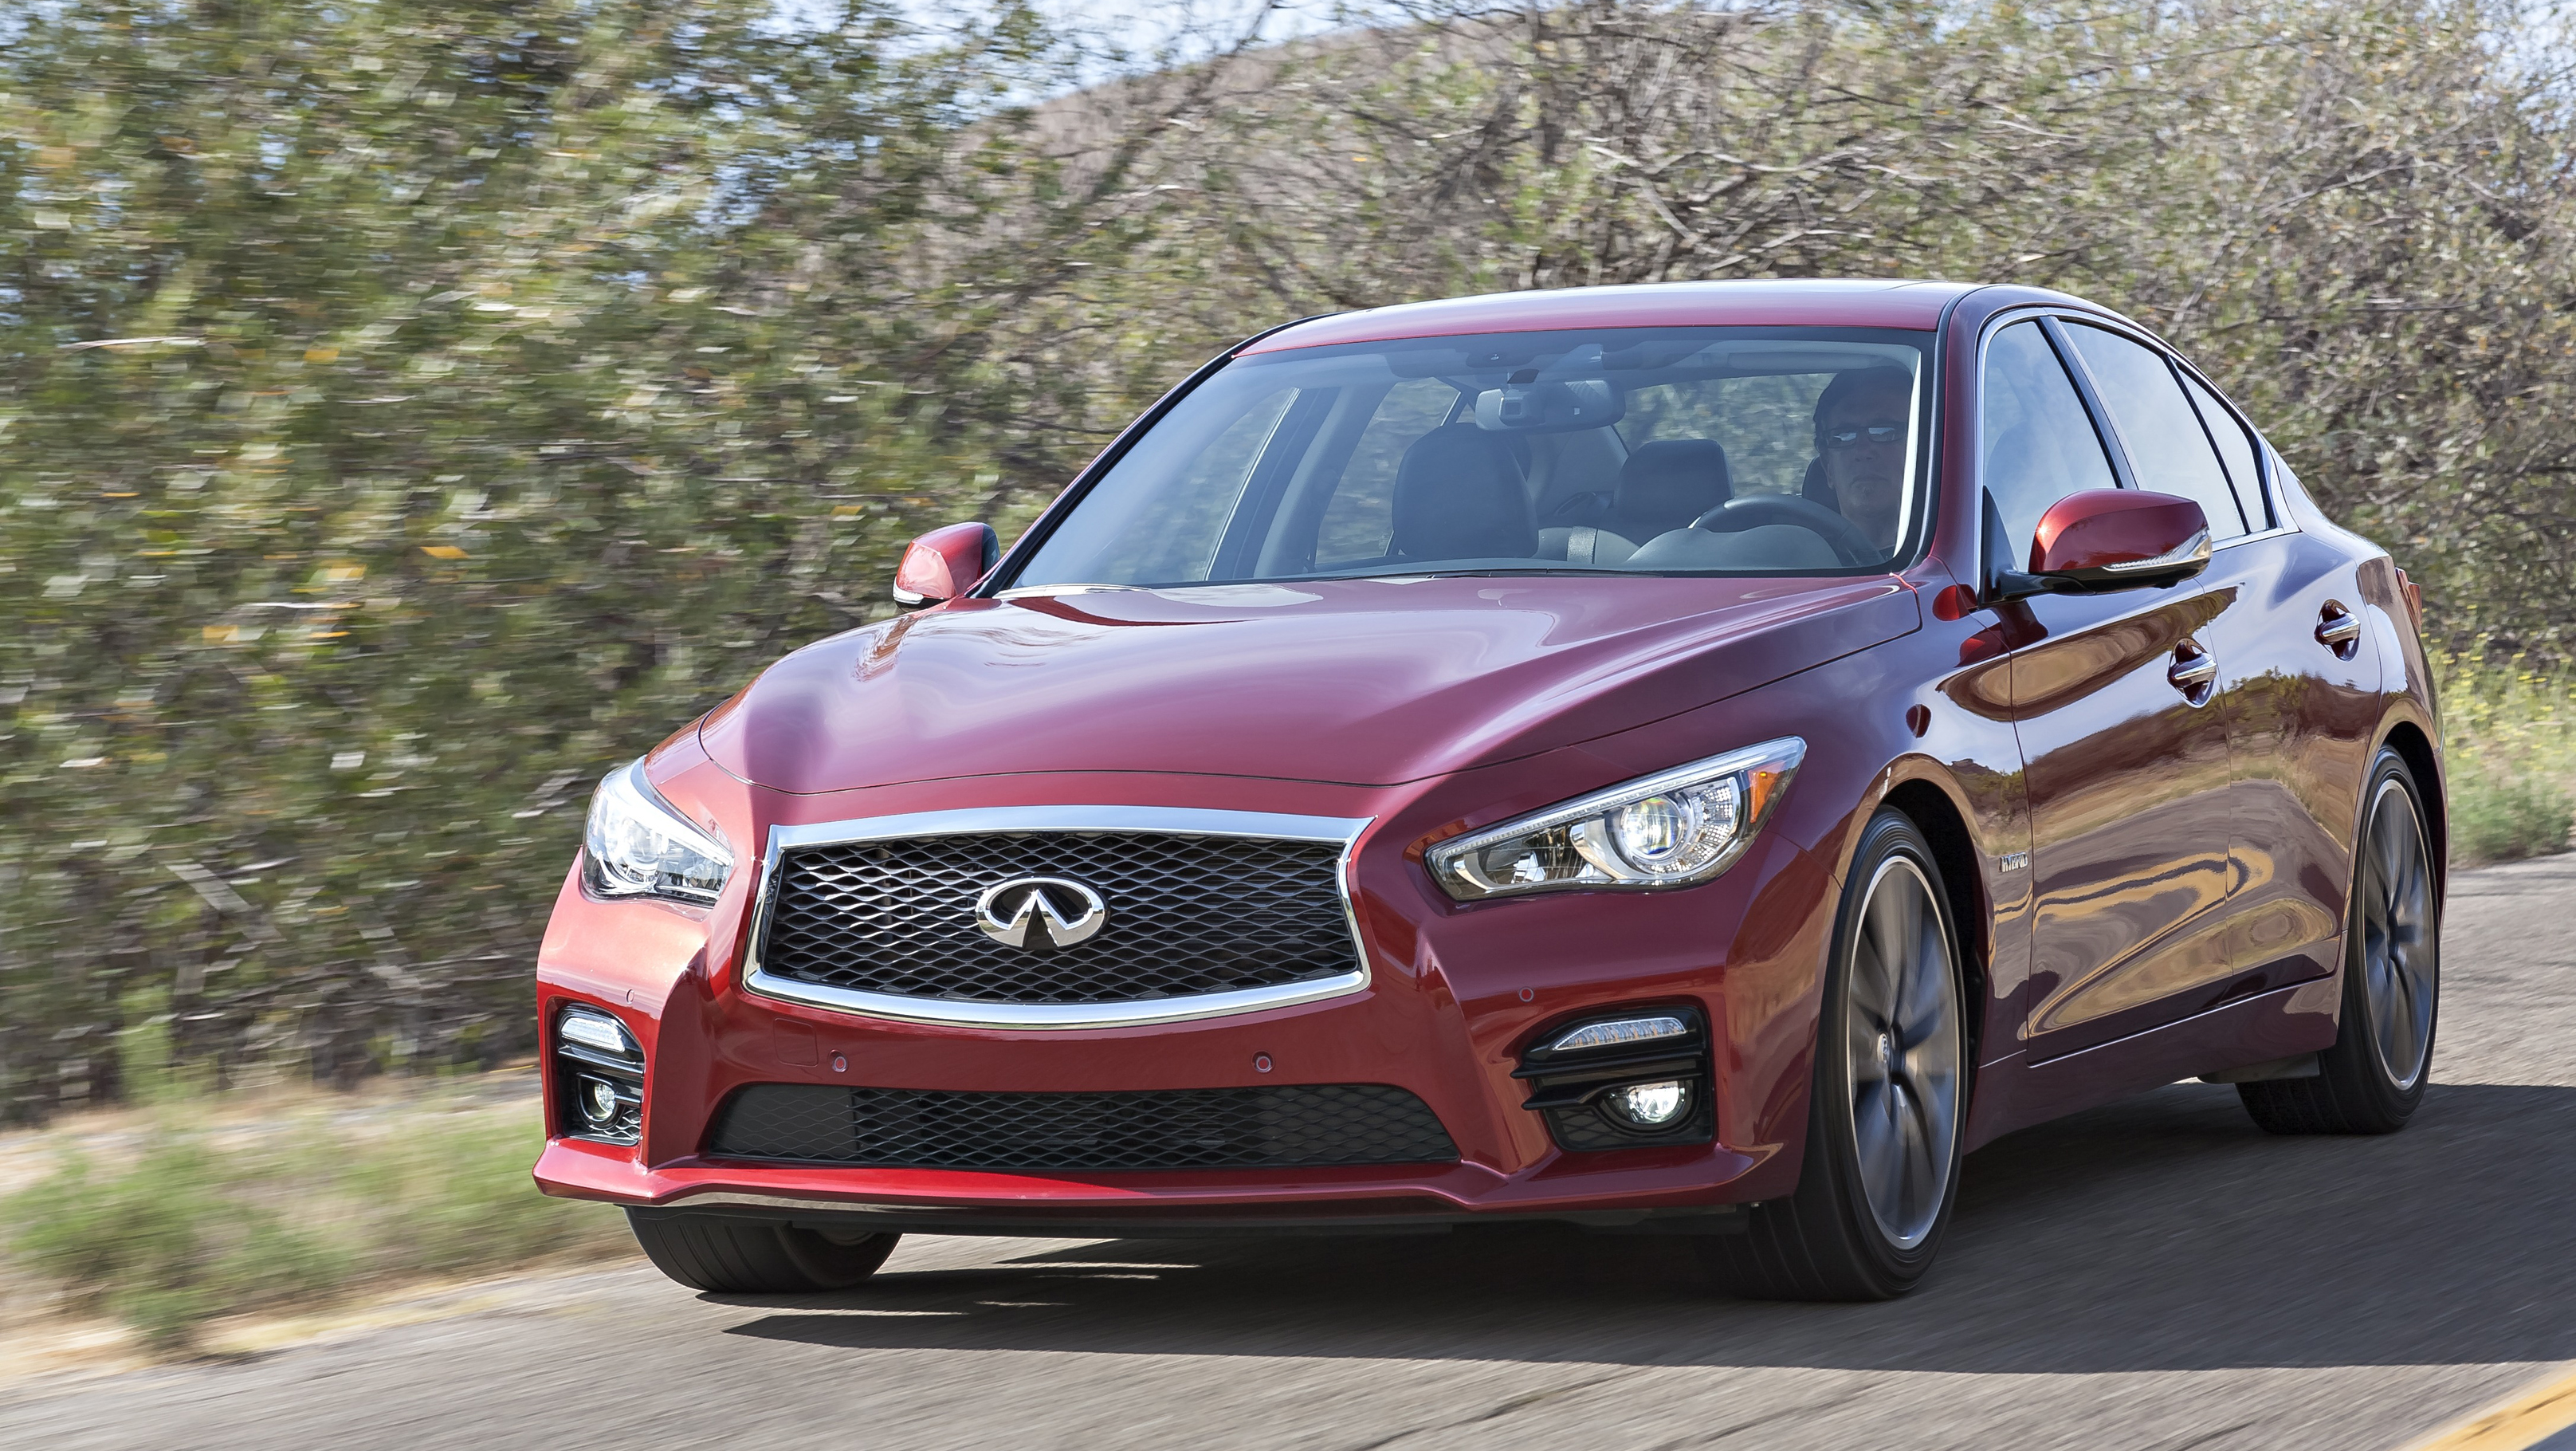 buying used: 2014-17 infiniti q50 – wheels.ca